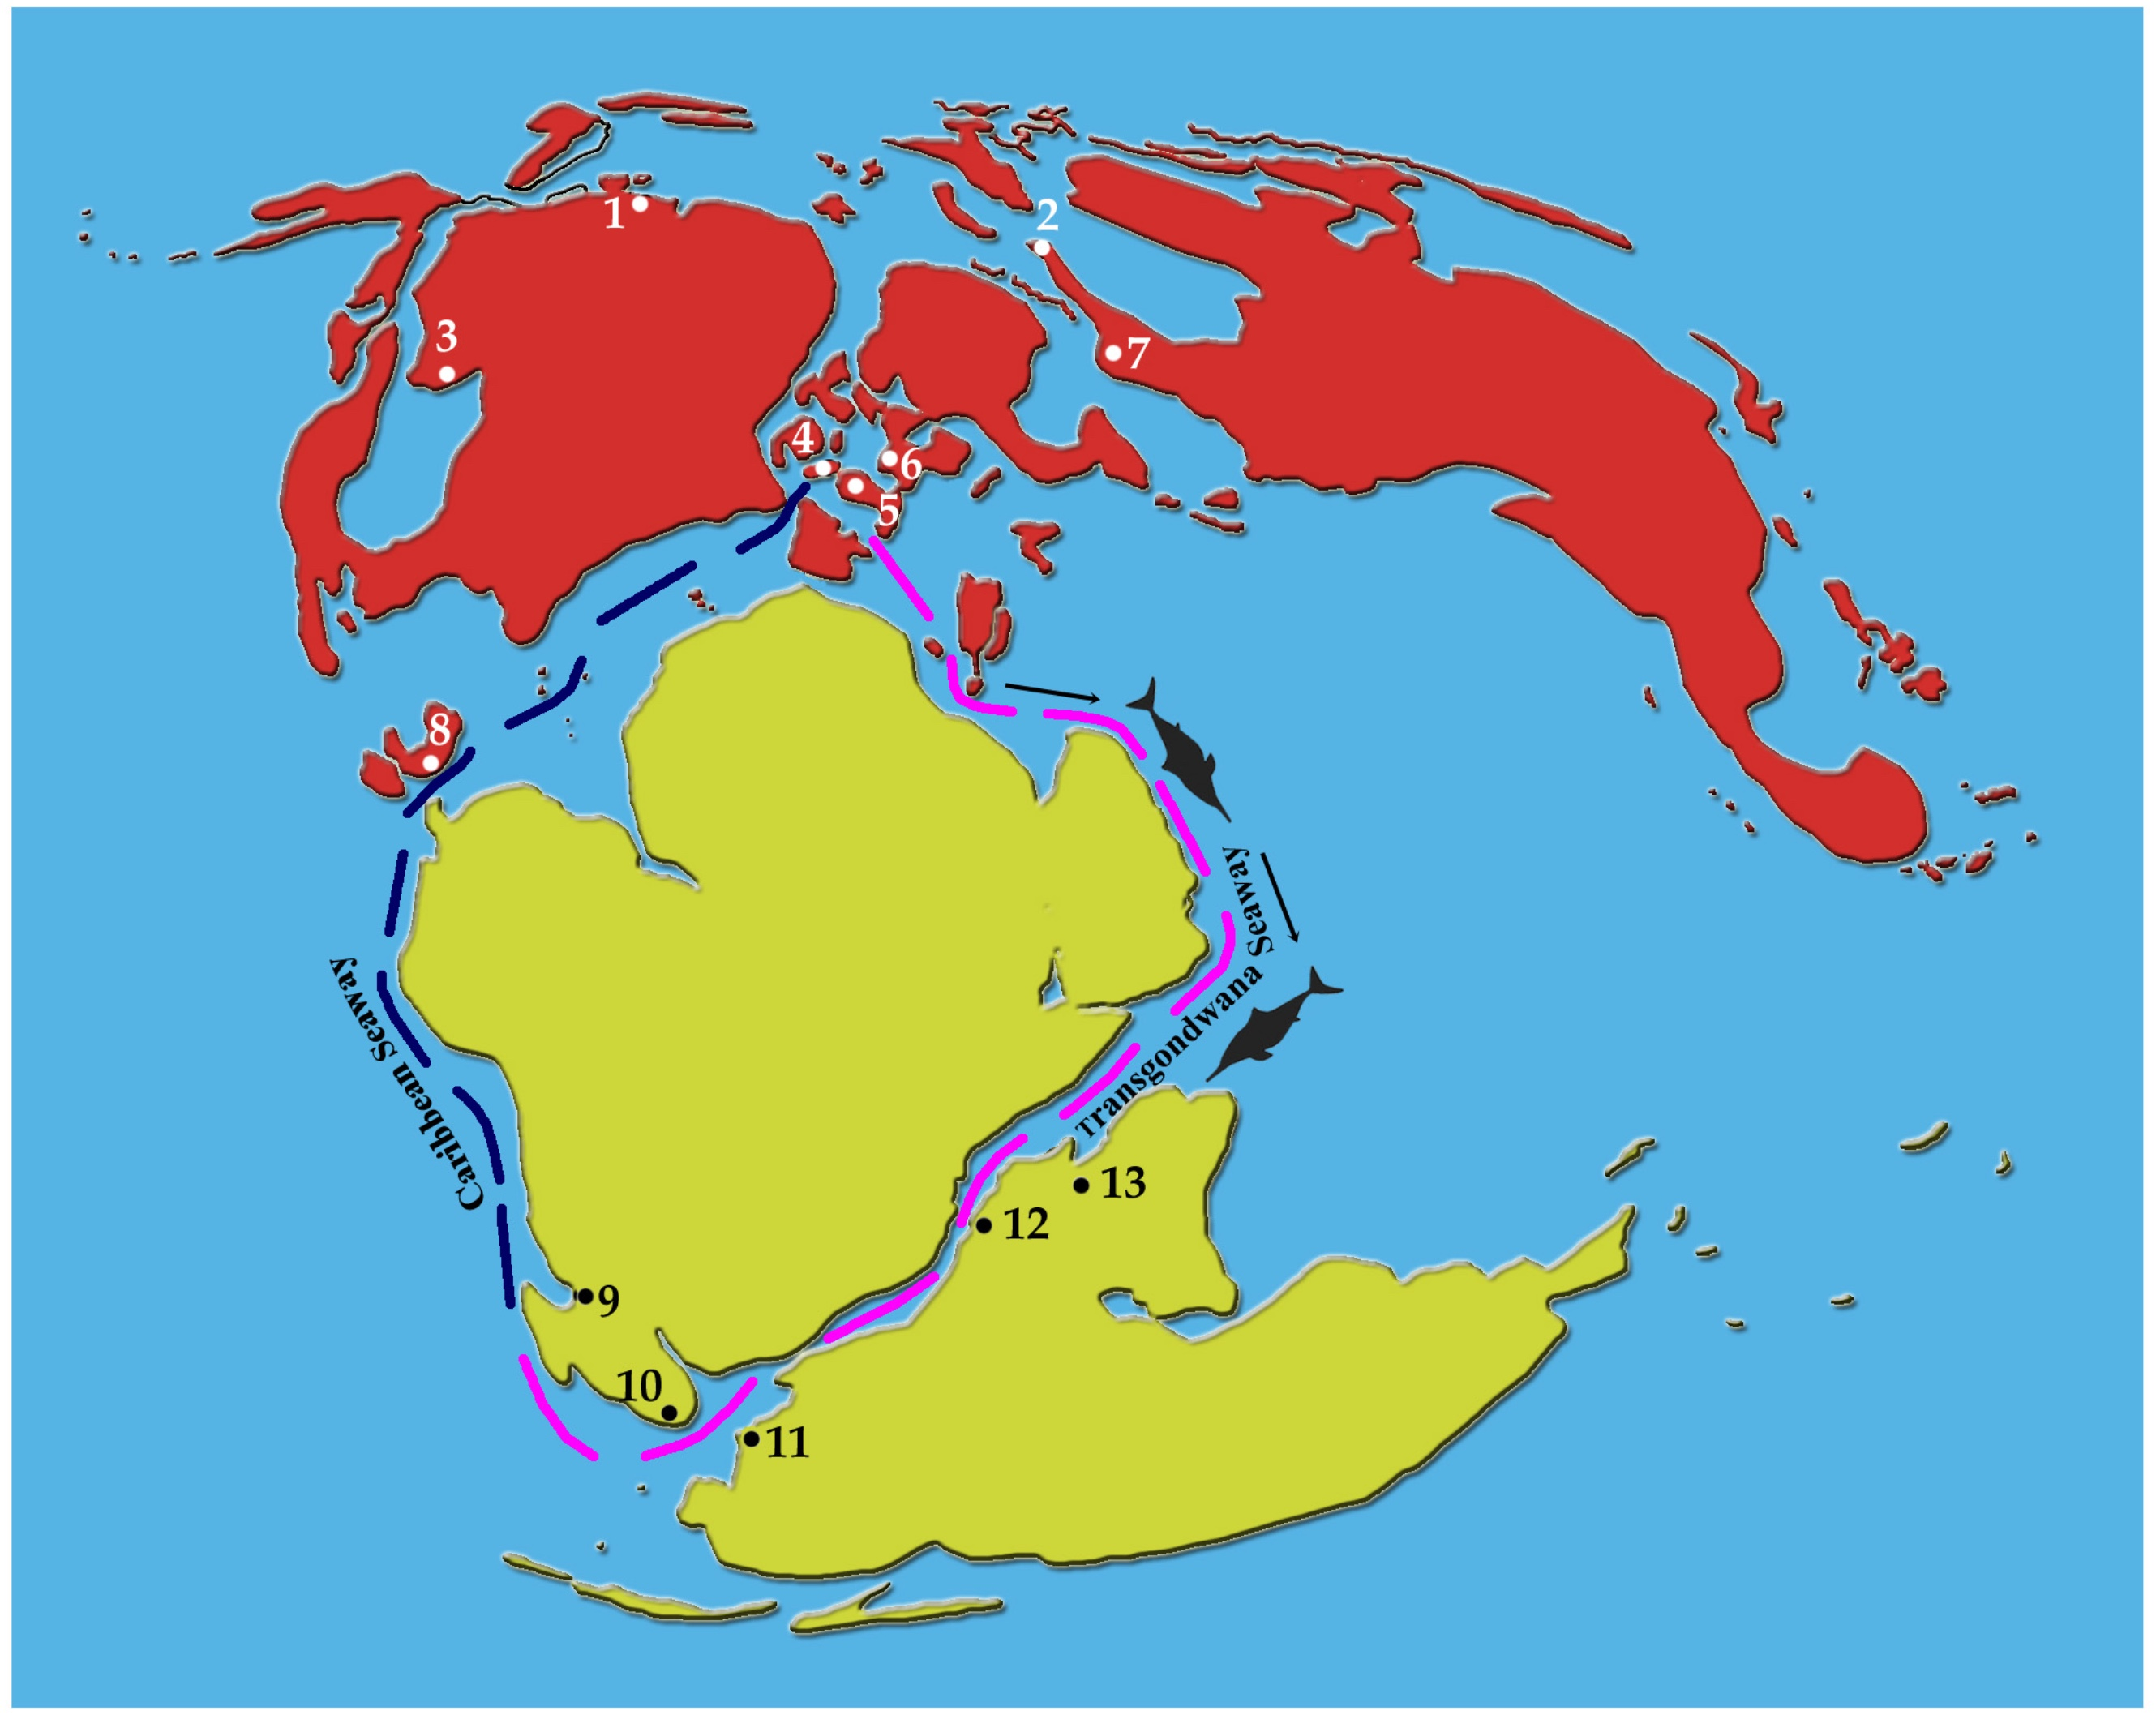 The world in the late Jurassic period. The part known as India today is marked at no. 13. The route that the ichthyosaur could have taken from Laurasia to Gondwanaland is shown in pink. Source: PLOS